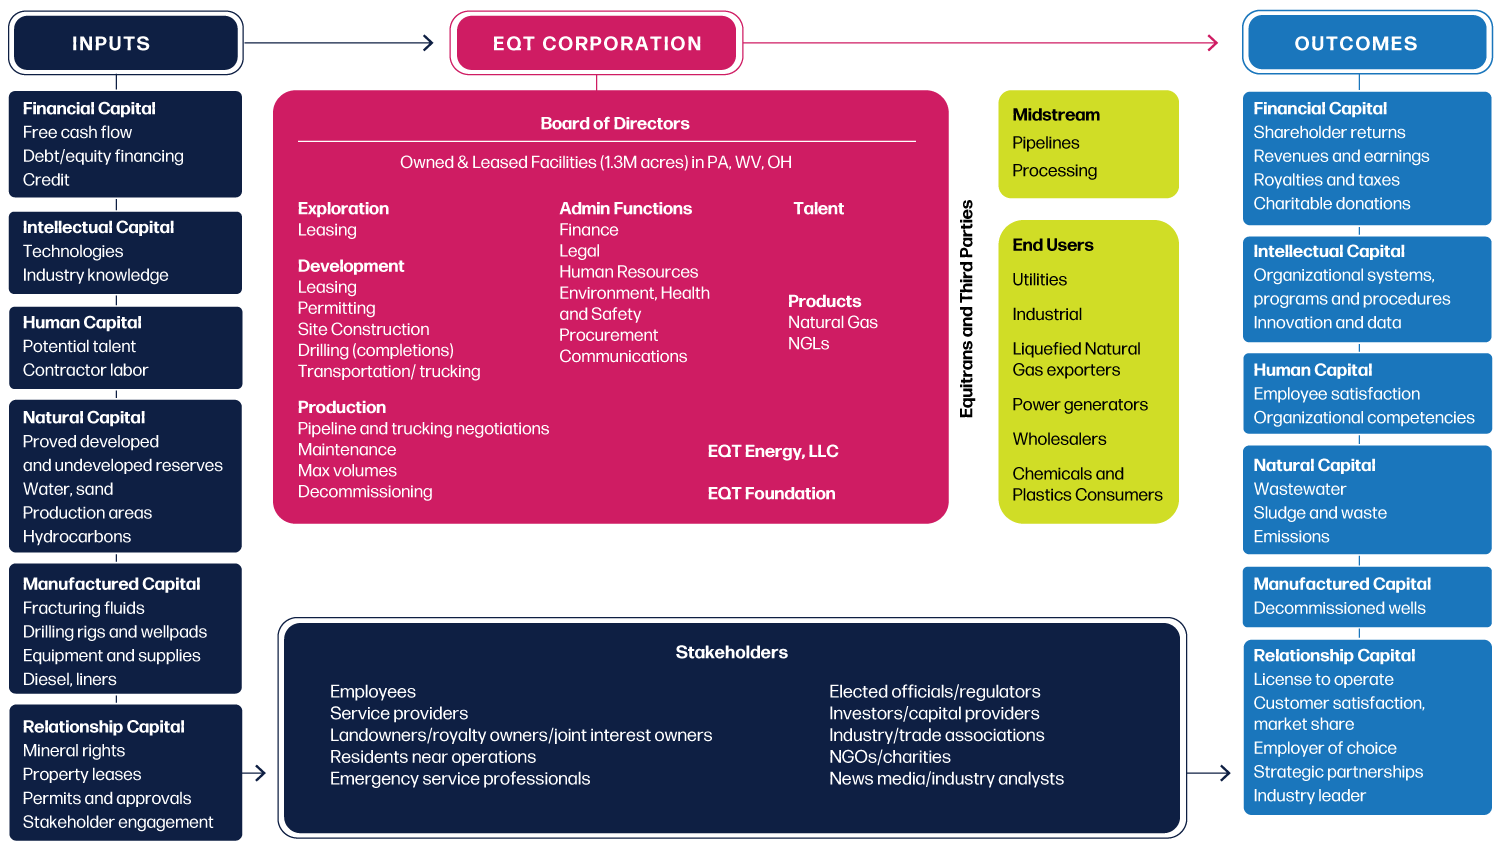 EQT's value chain displays how the six capitals (financial, intellectual, human, natural, manufactured, and relationship) flow through EQT, resulting in varying outcomes.